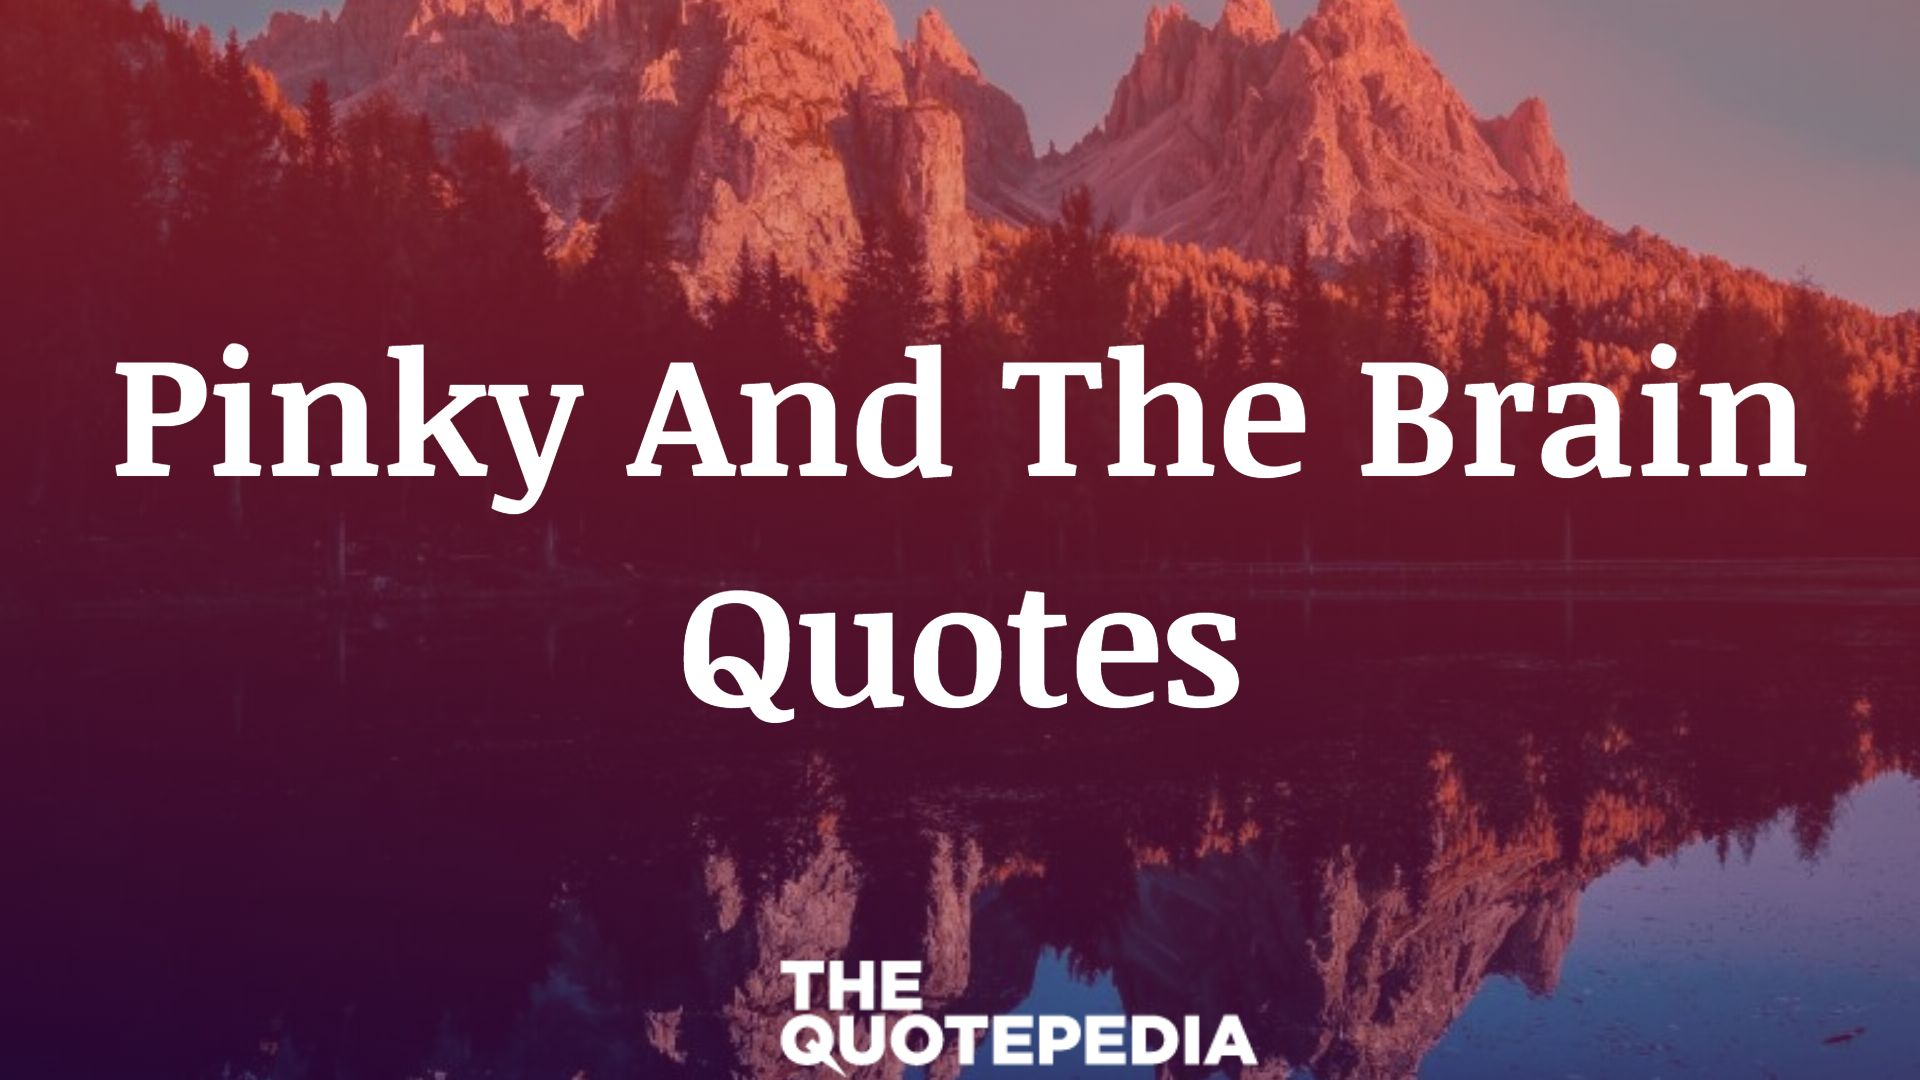 Pinky And The Brain Quotes